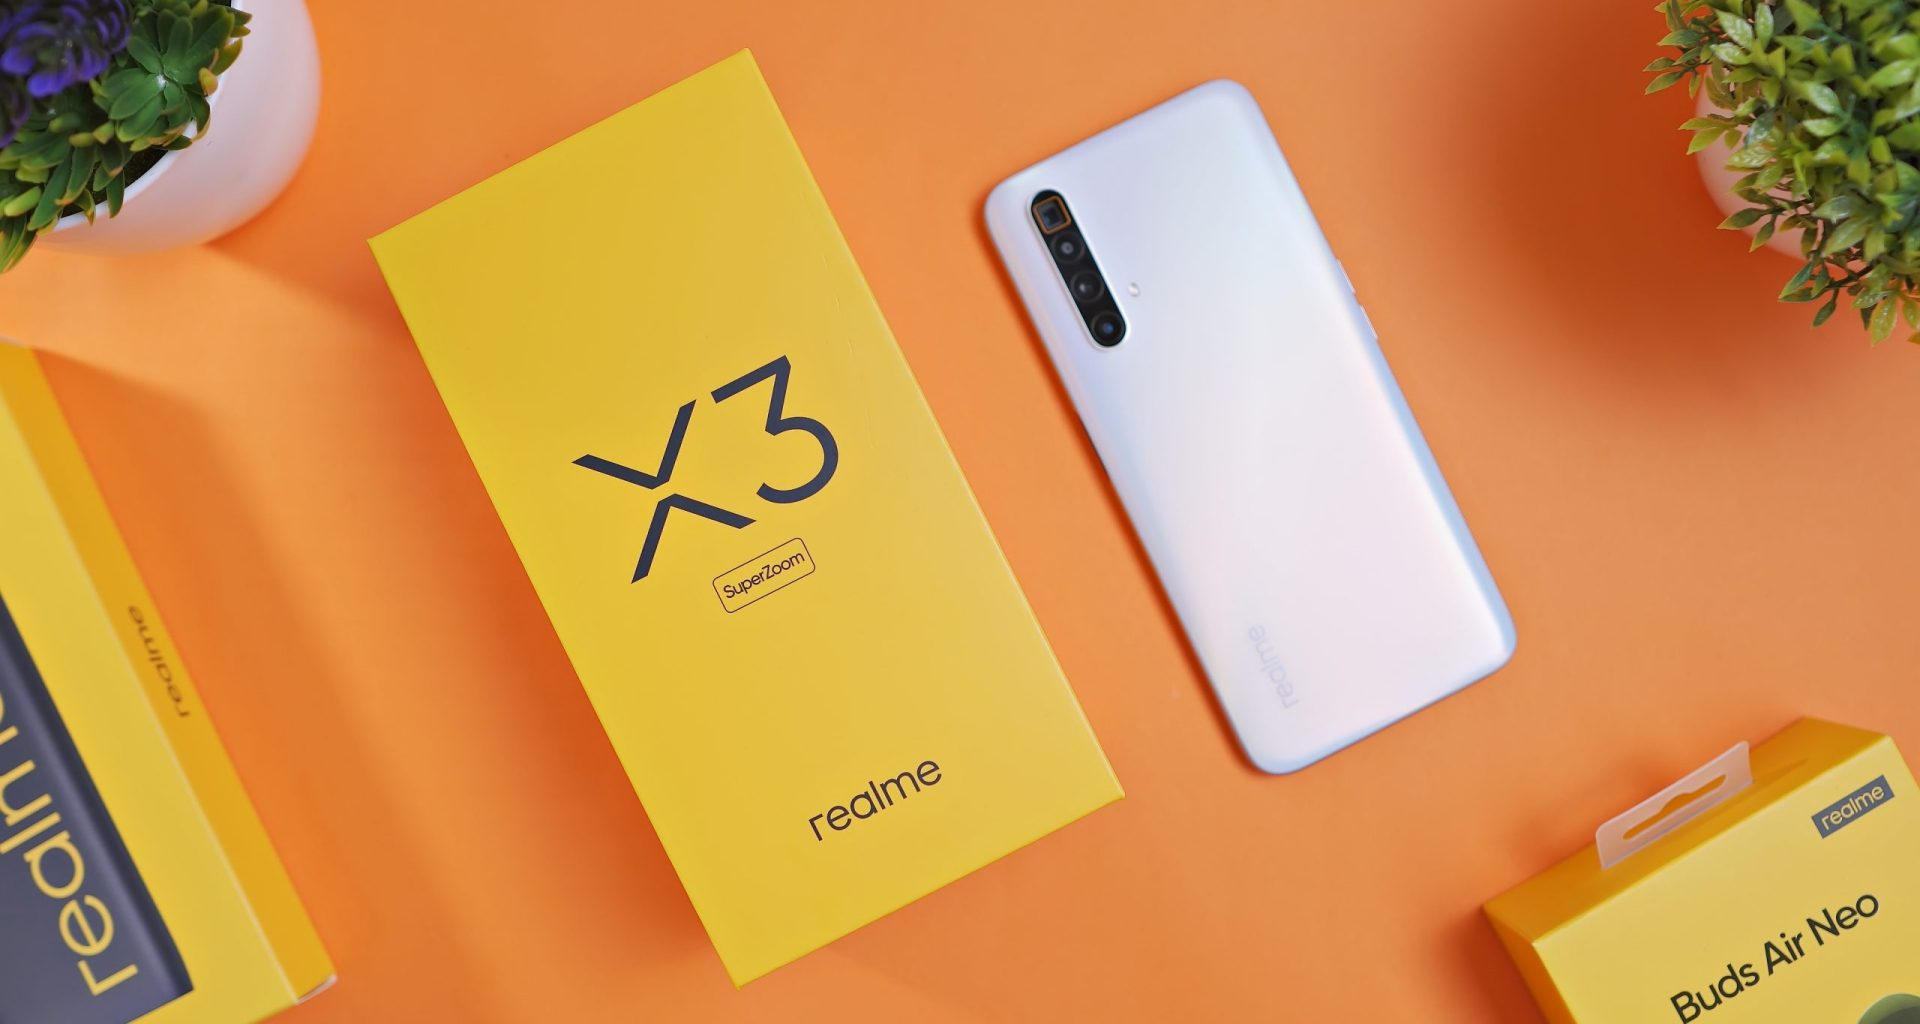 C1184 thumb.00 00 18 29.Still004 scaled 1 - Realme X3 SuperZoom price in Nigeria and review